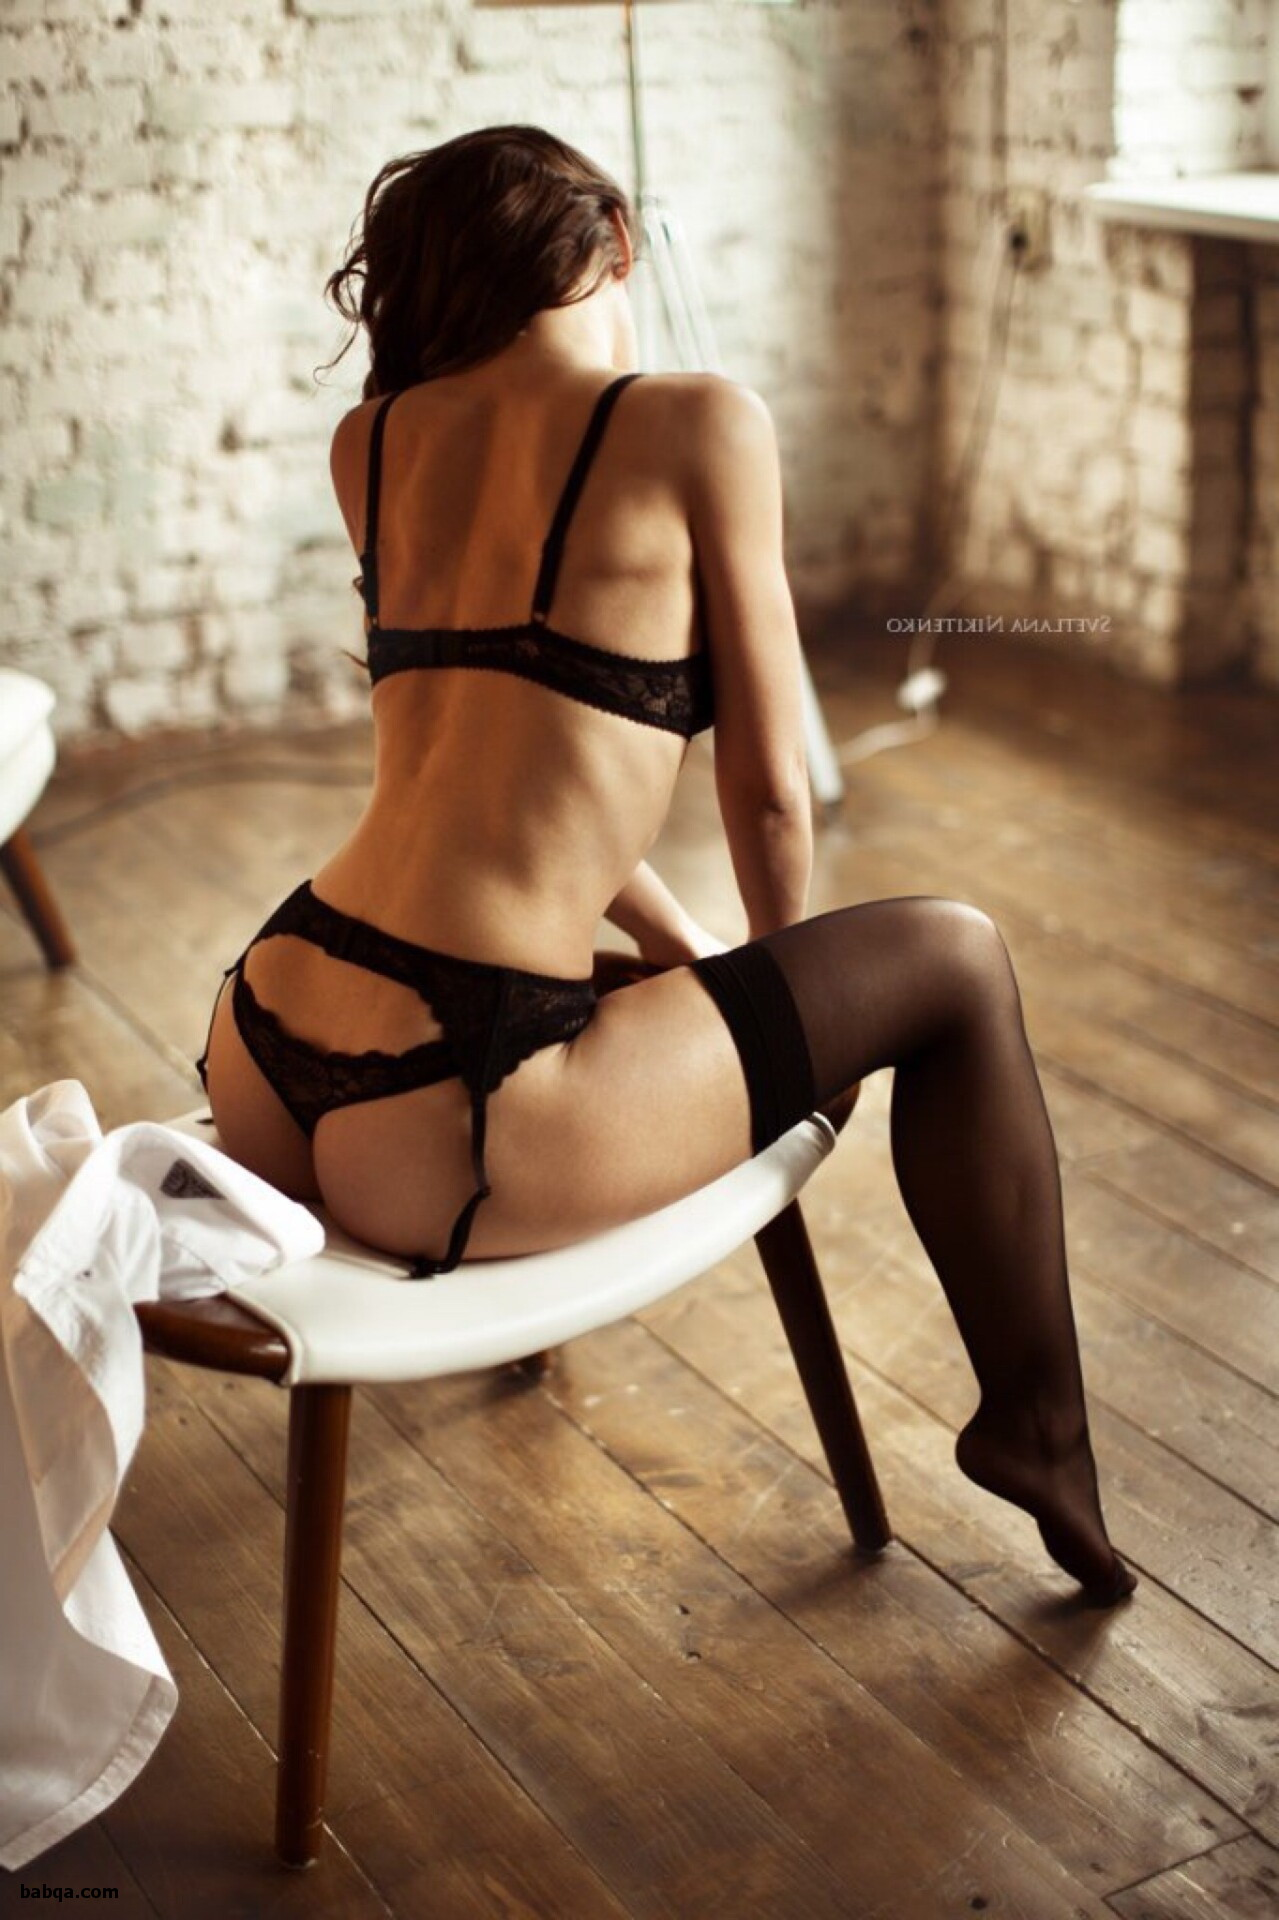 mature stockings creampie and funny stocking stuffers for women